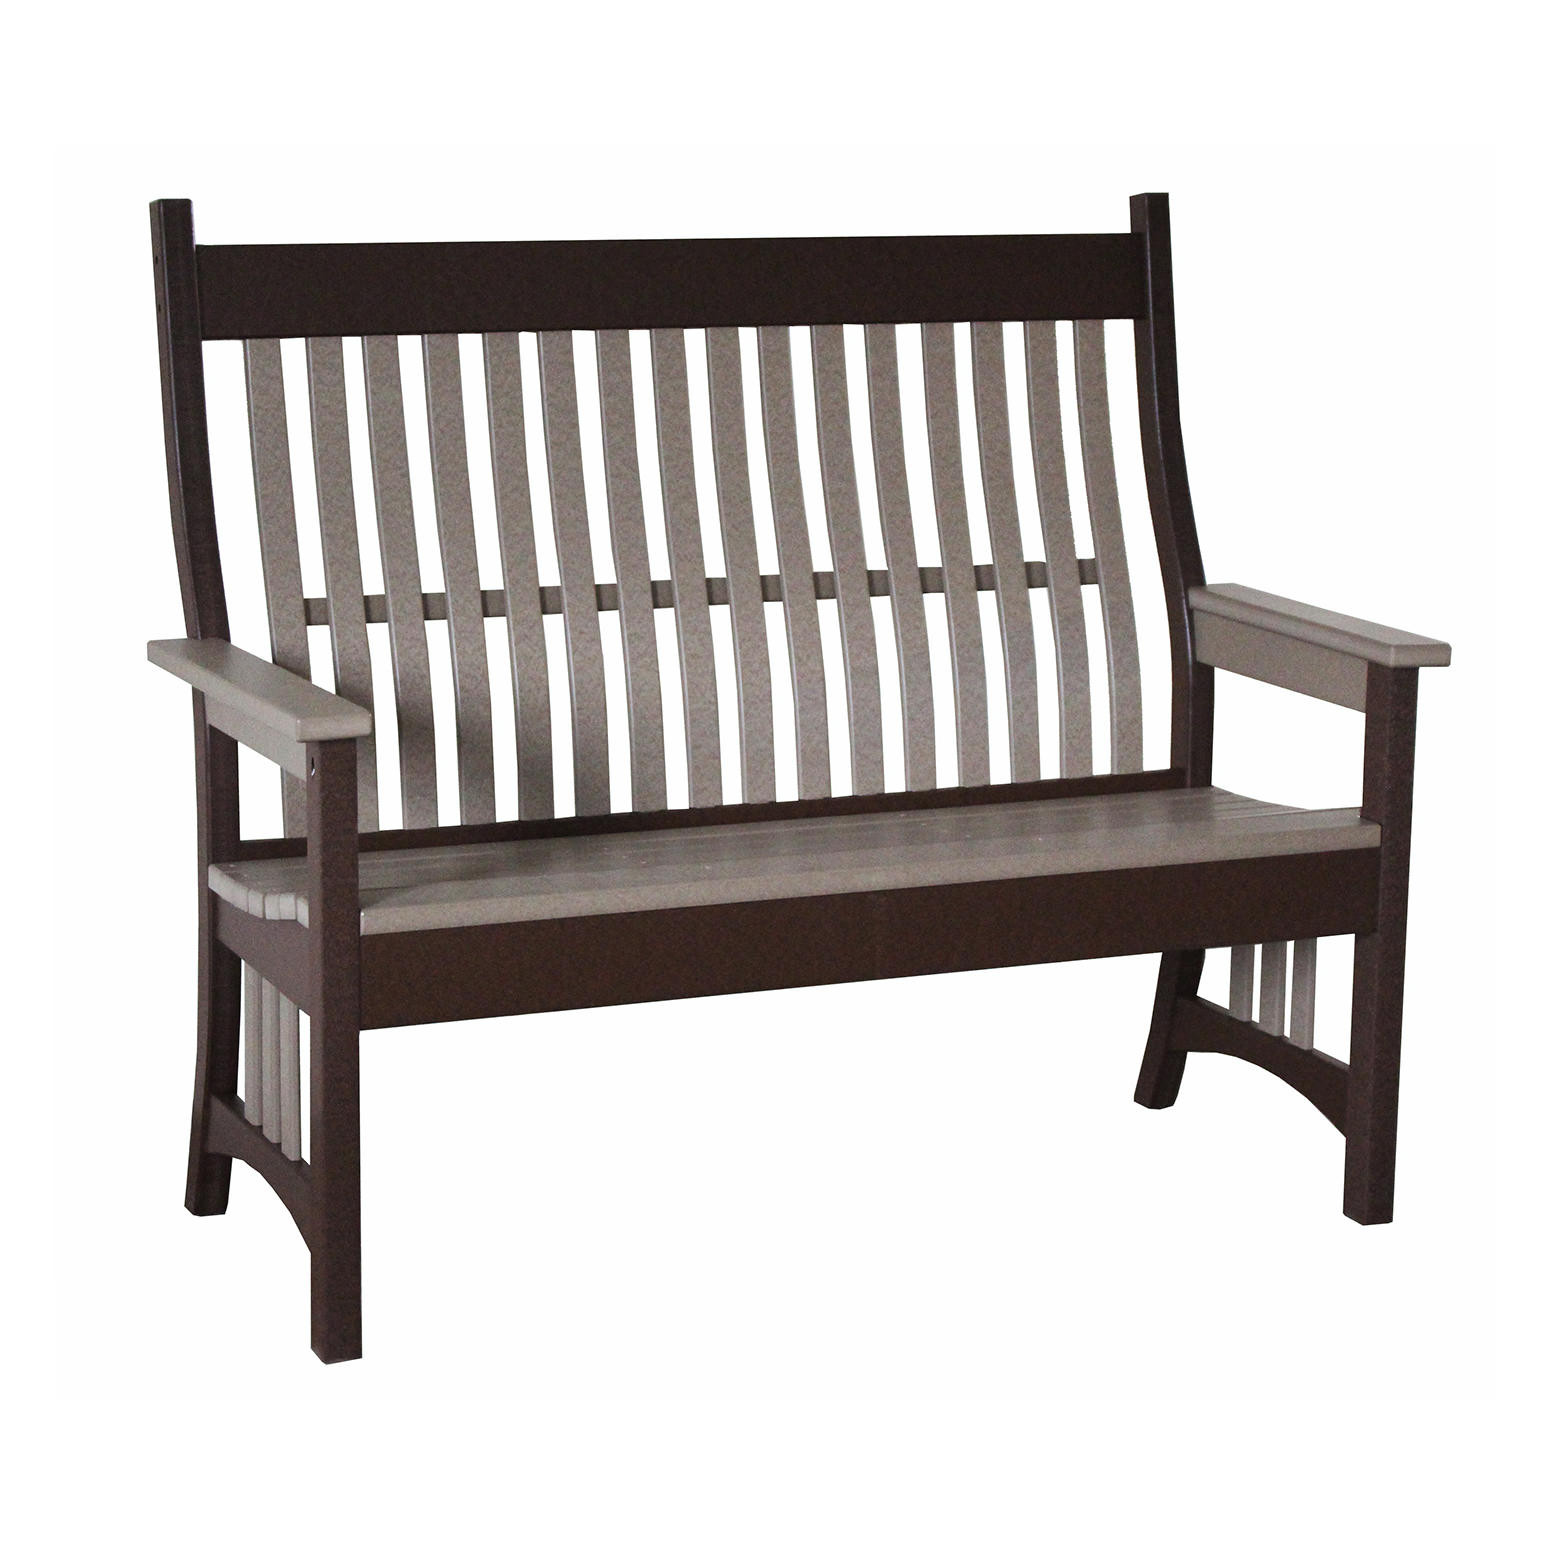 Indiana Amish Poly 4' Rexford Bench